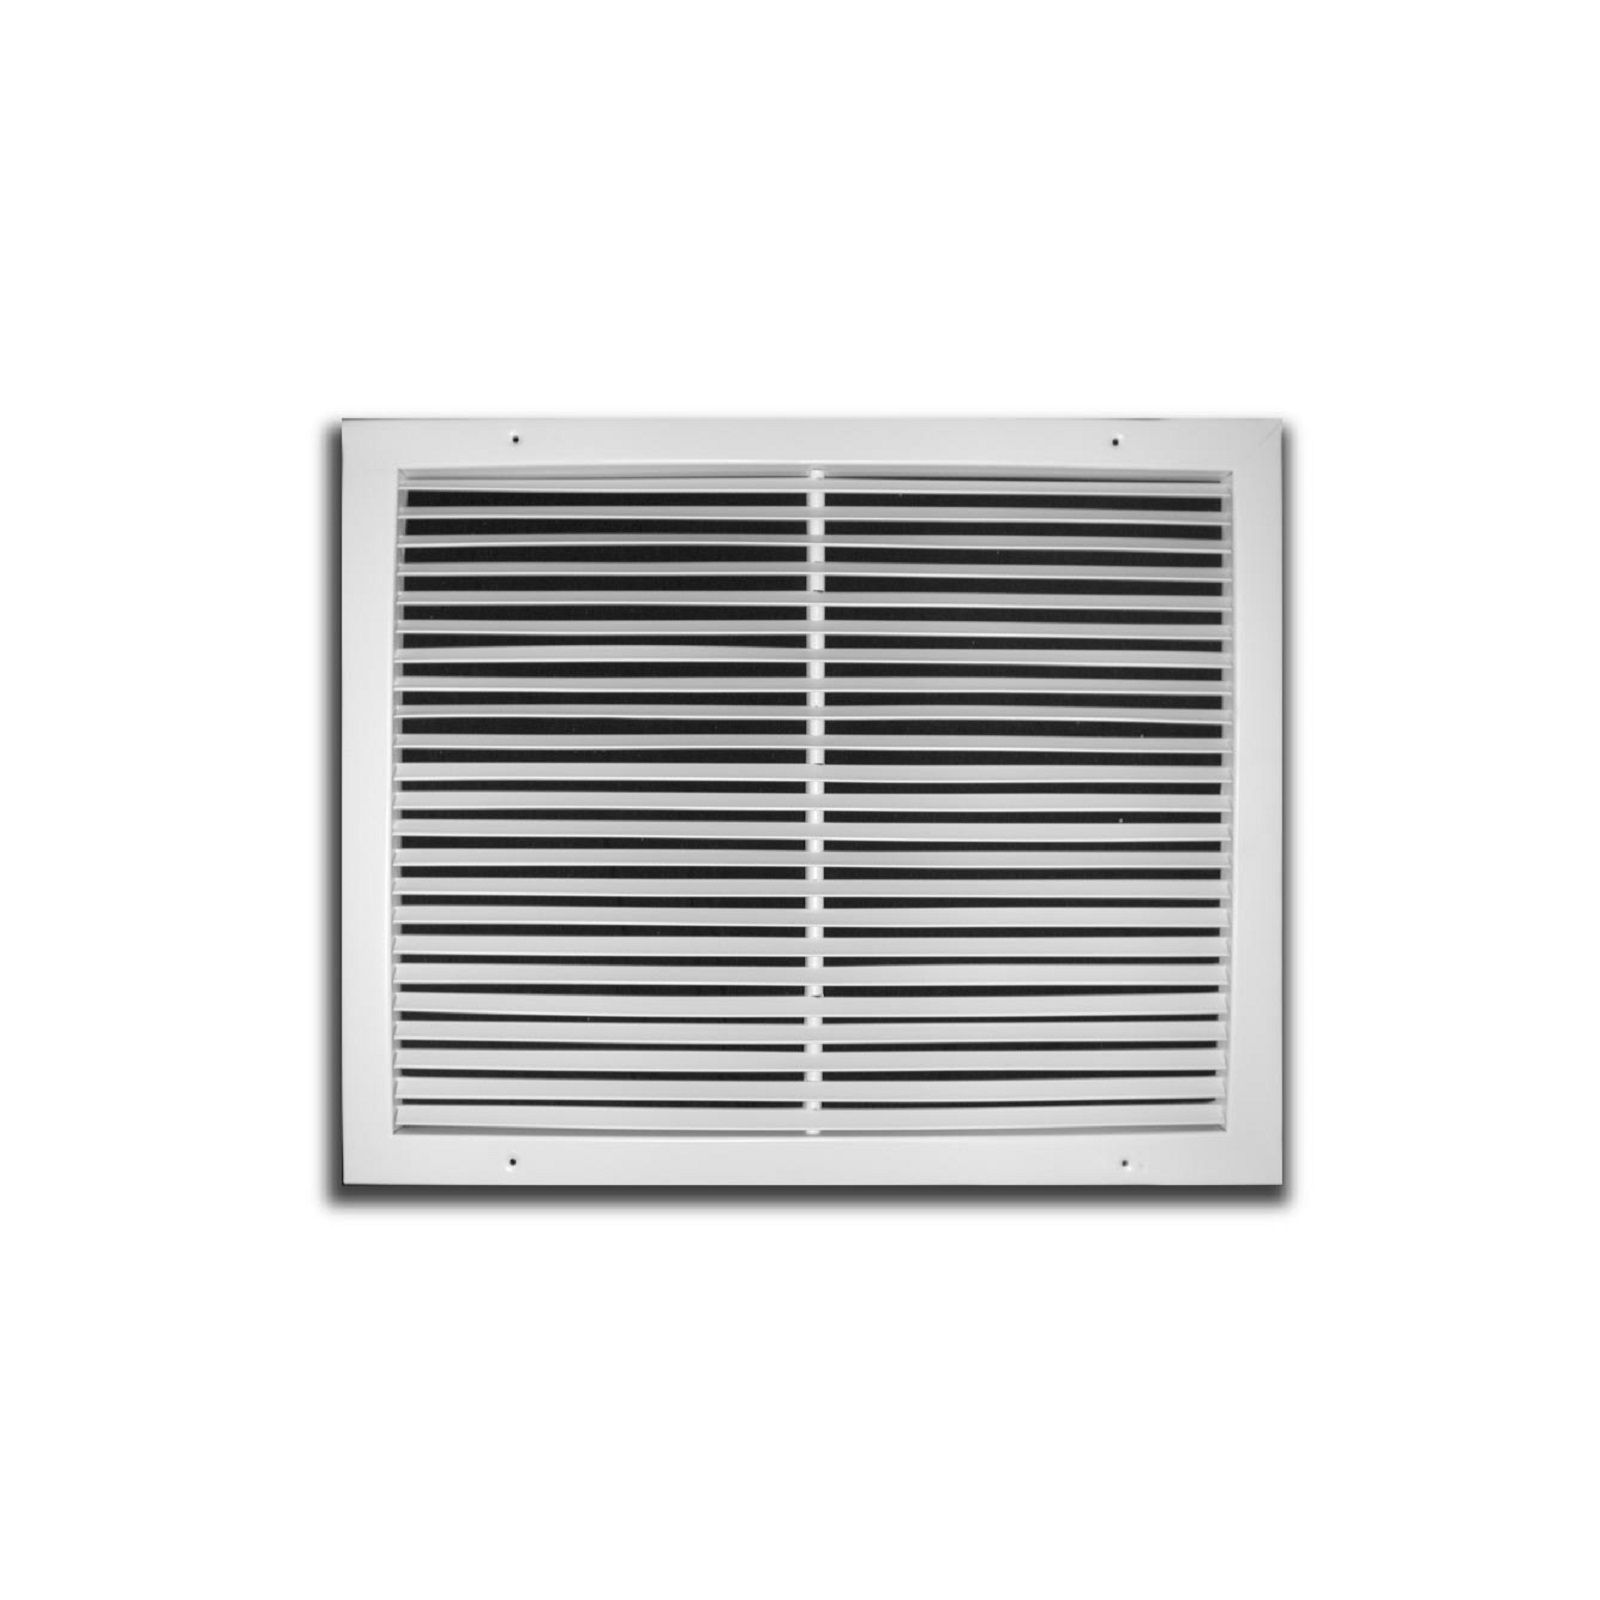 "TRUaire 270 10X08 - Steel Fixed Bar Return Air Grille, White, 10"" X 08"""